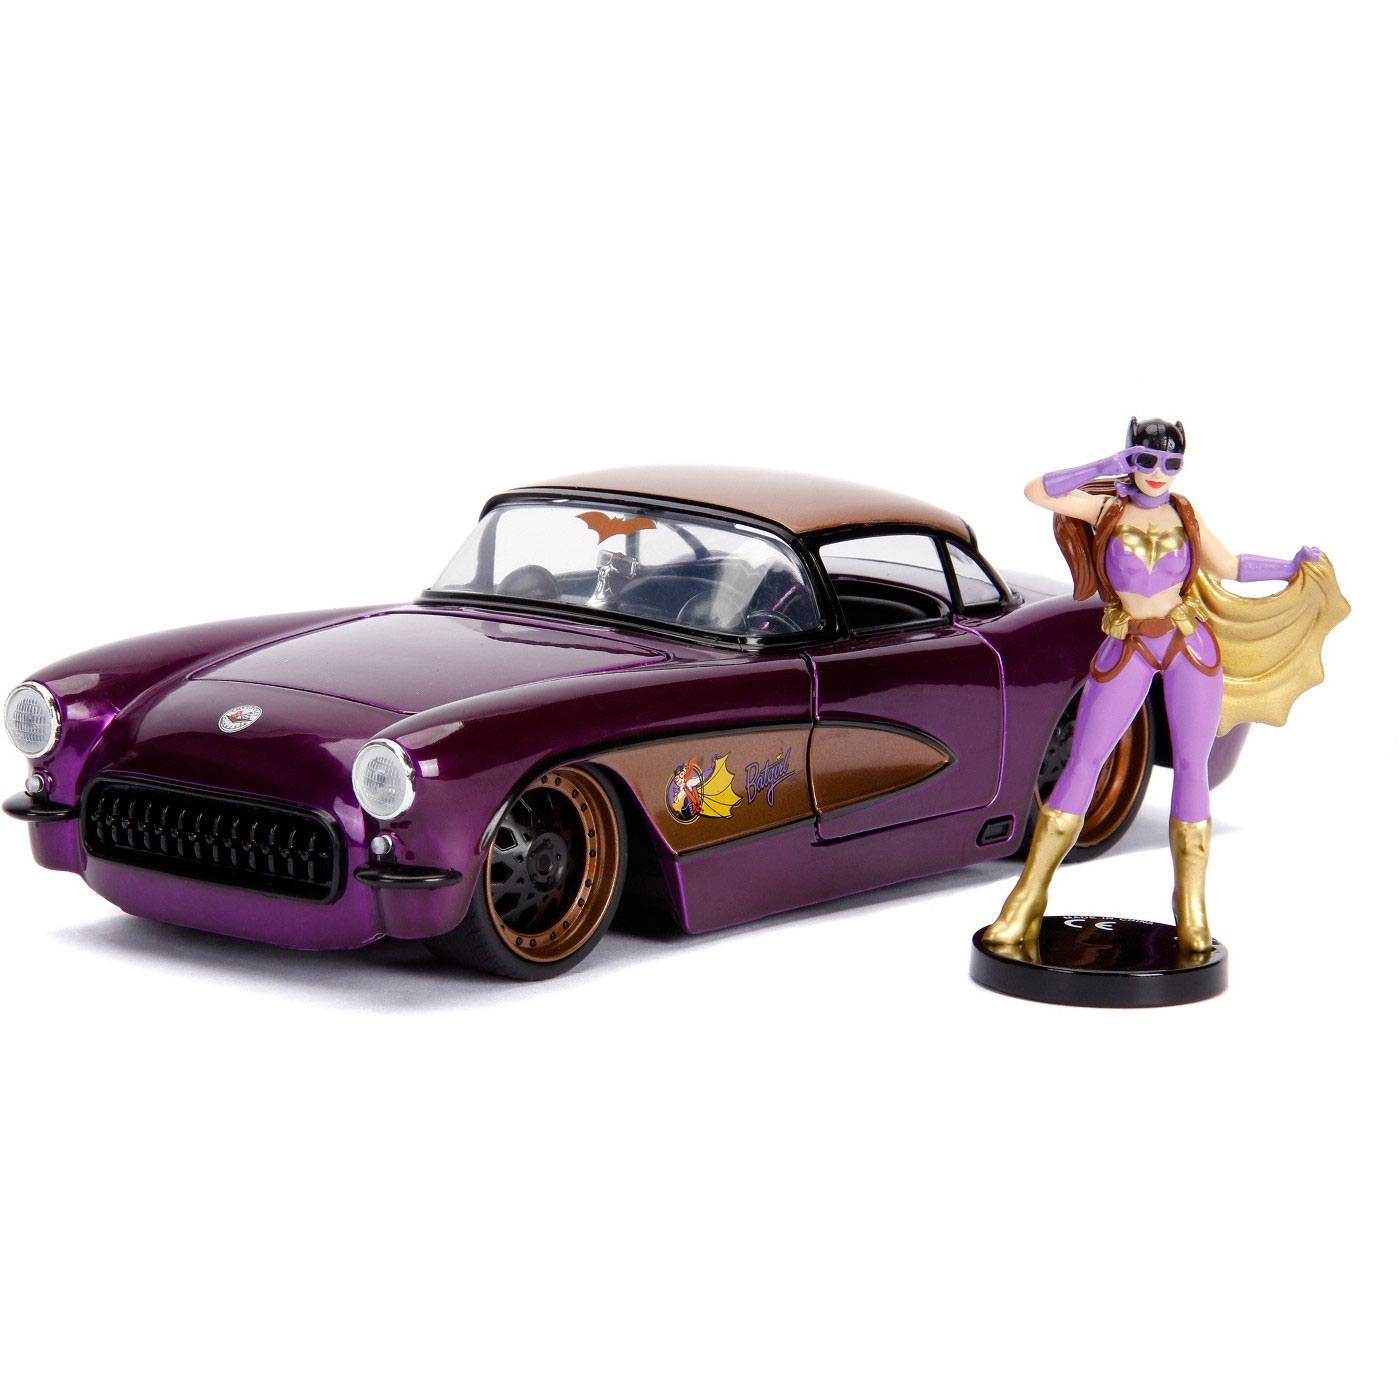 DC Bombshells Diecast Model Hollywood Rides 1/24 1957 Chevy Corvette with Batgirl Figure